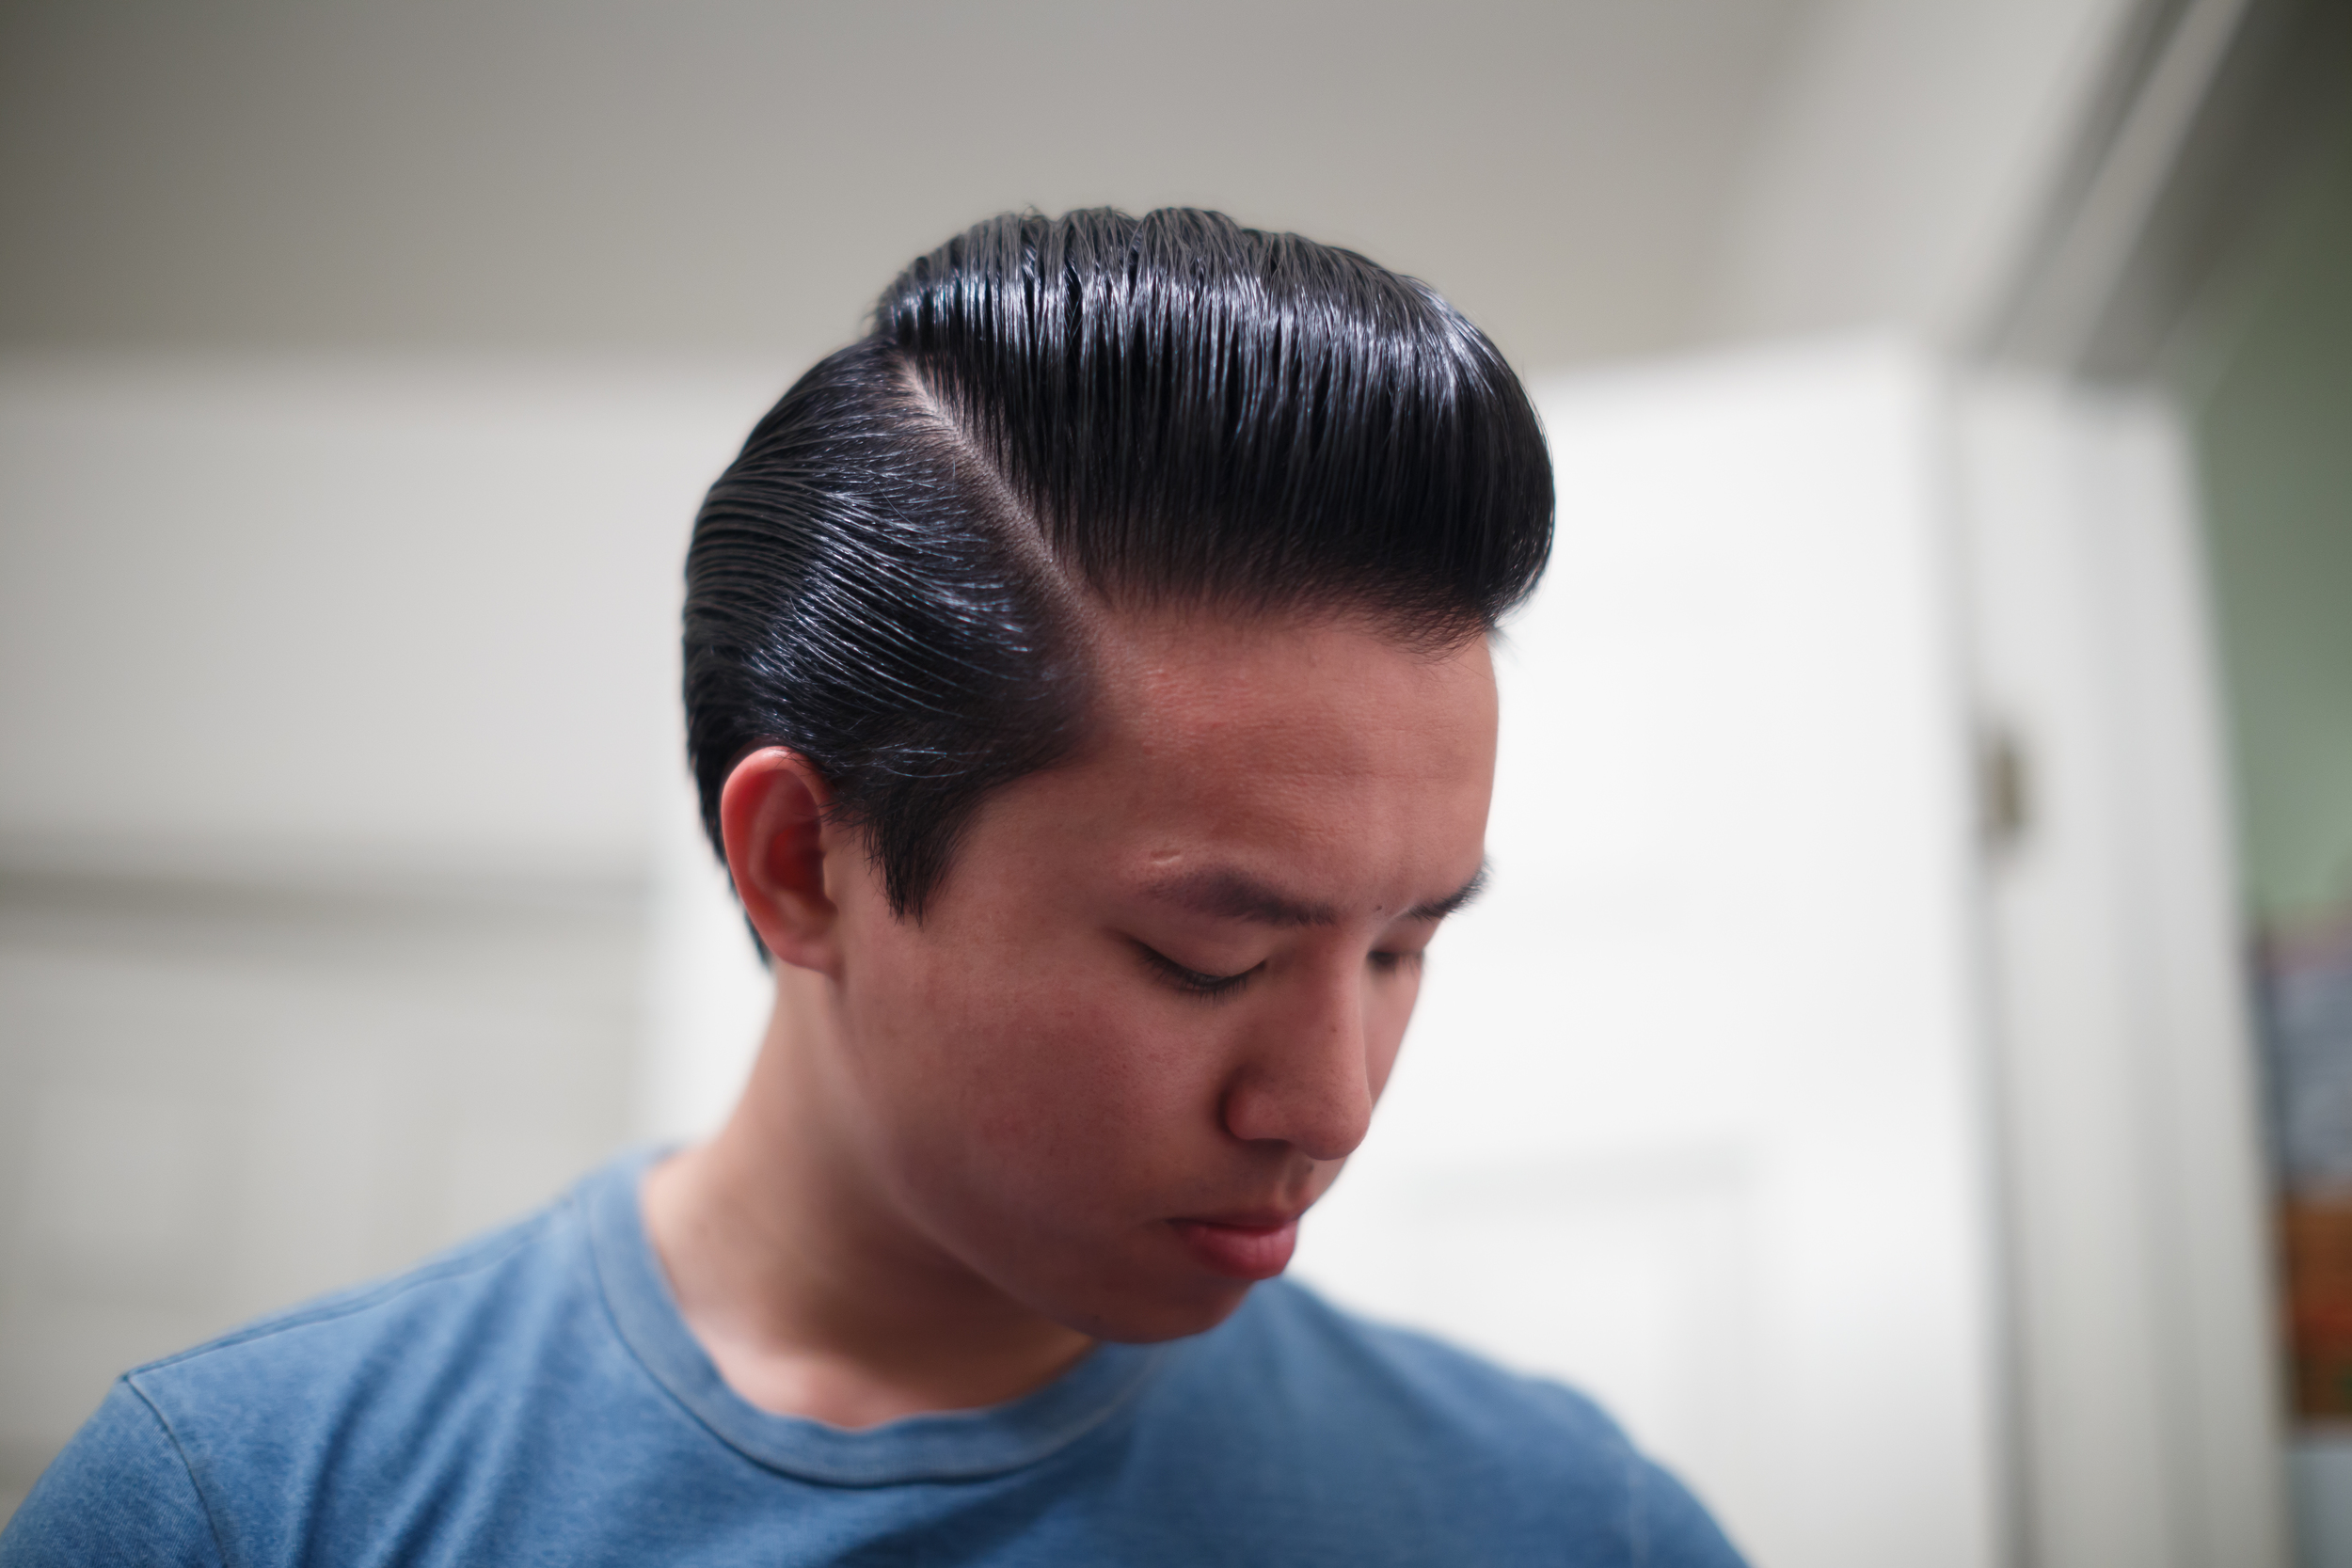 Charming Pomade Cool Grease CoolGrease Hedgelion Japan Japanese Hair Hairstyle Pomp Pompadour 213